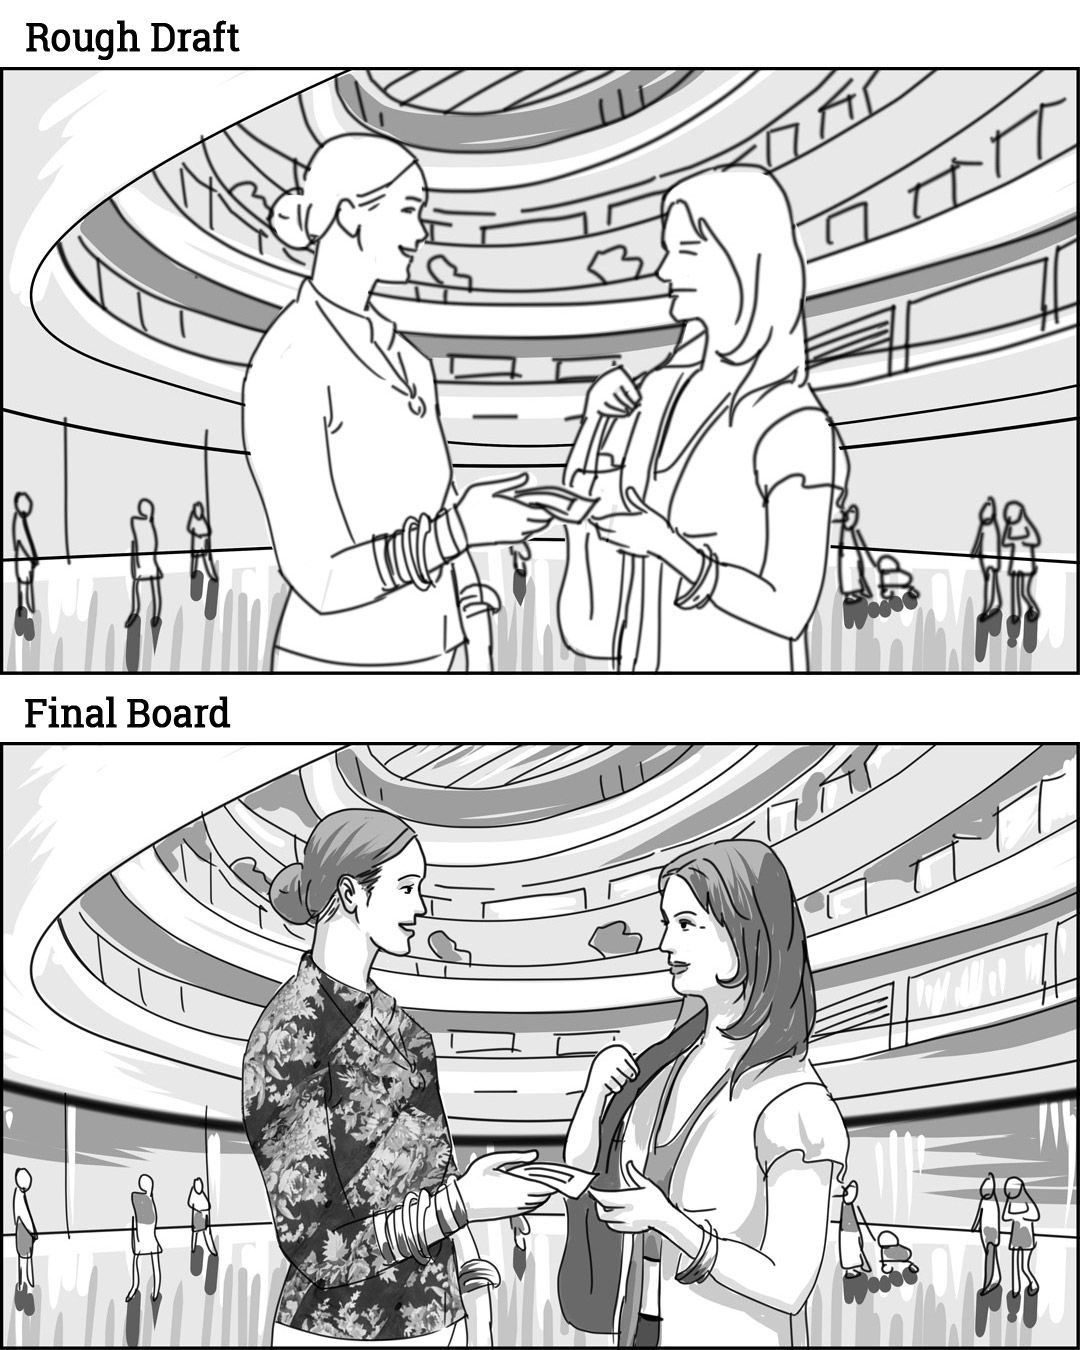 Storyboards Bh Unnamed Film Storyboard Project  Storyboard And